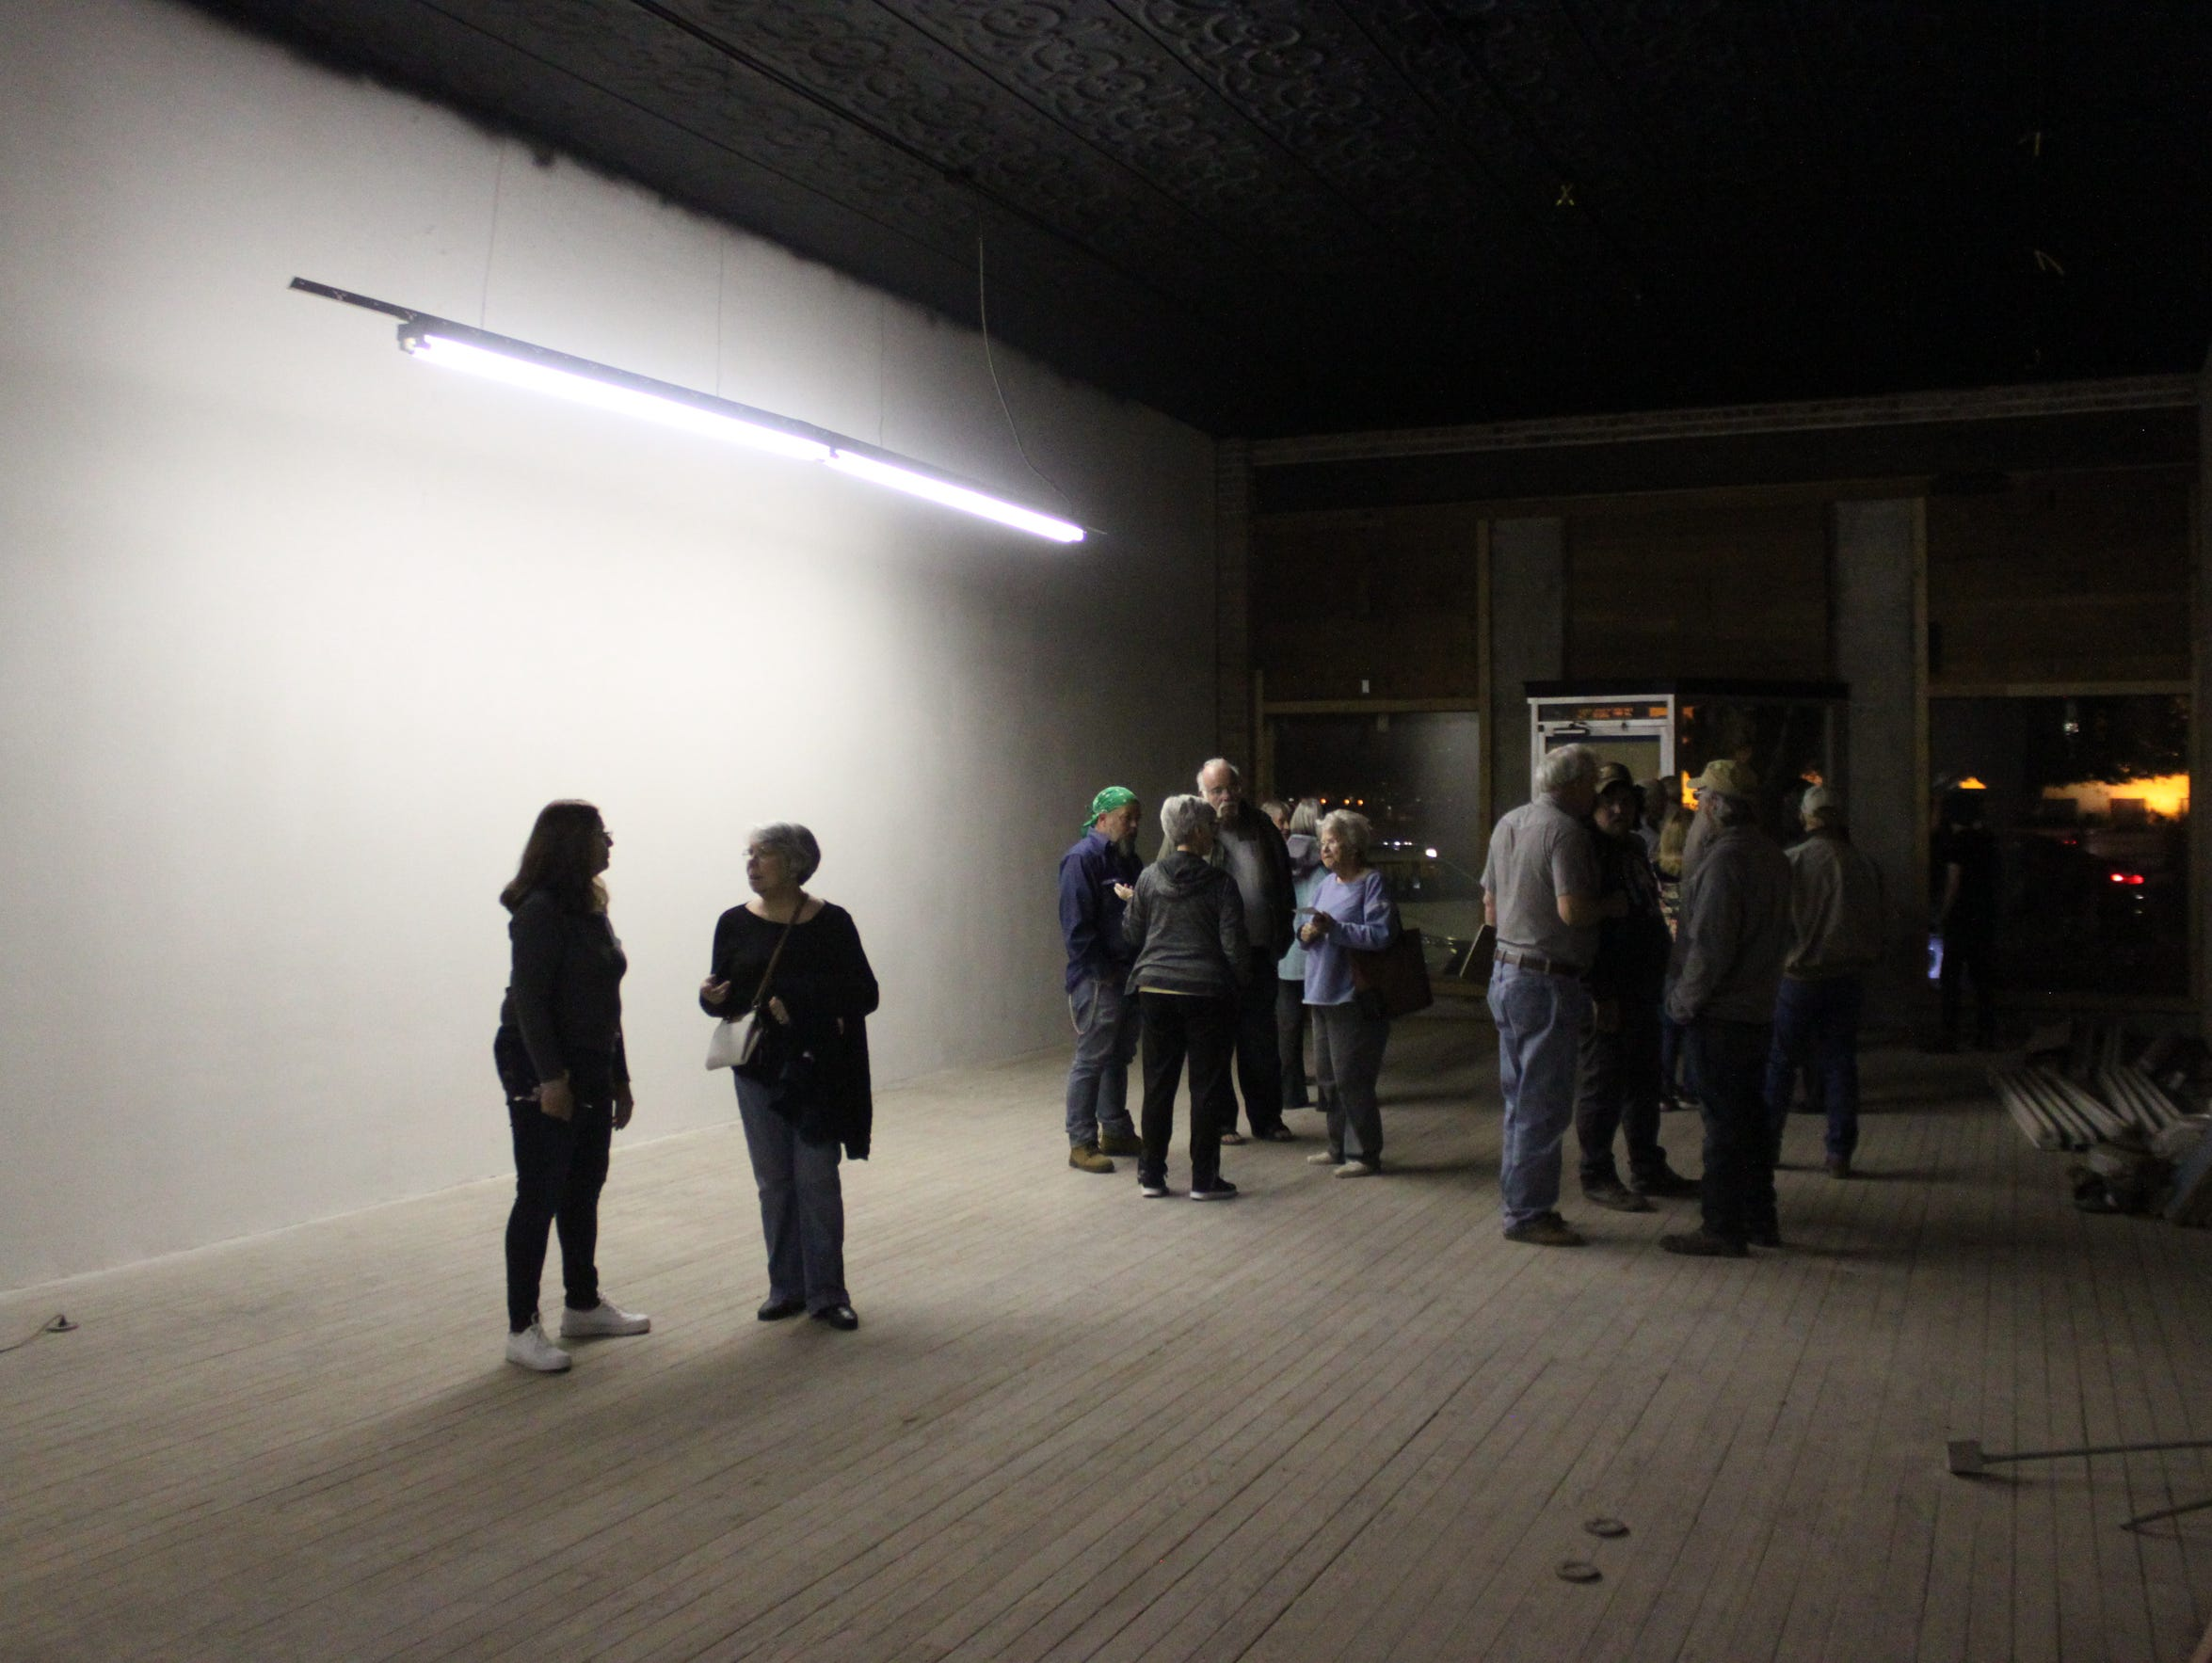 Members of the public survey the old rooms and artifacts